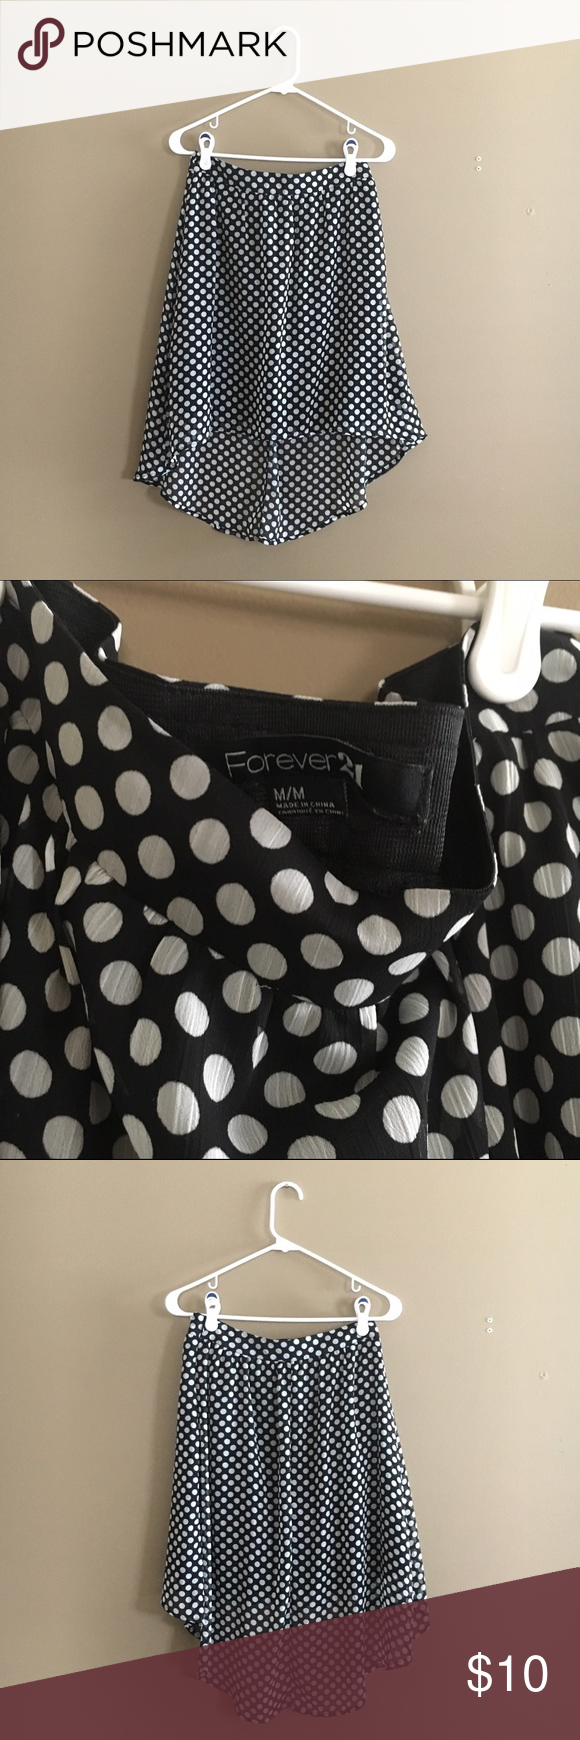 Forever 21 Black Polka Dot Hi-Lo Skirt In very good condition. Forever 21 Skirts High Low